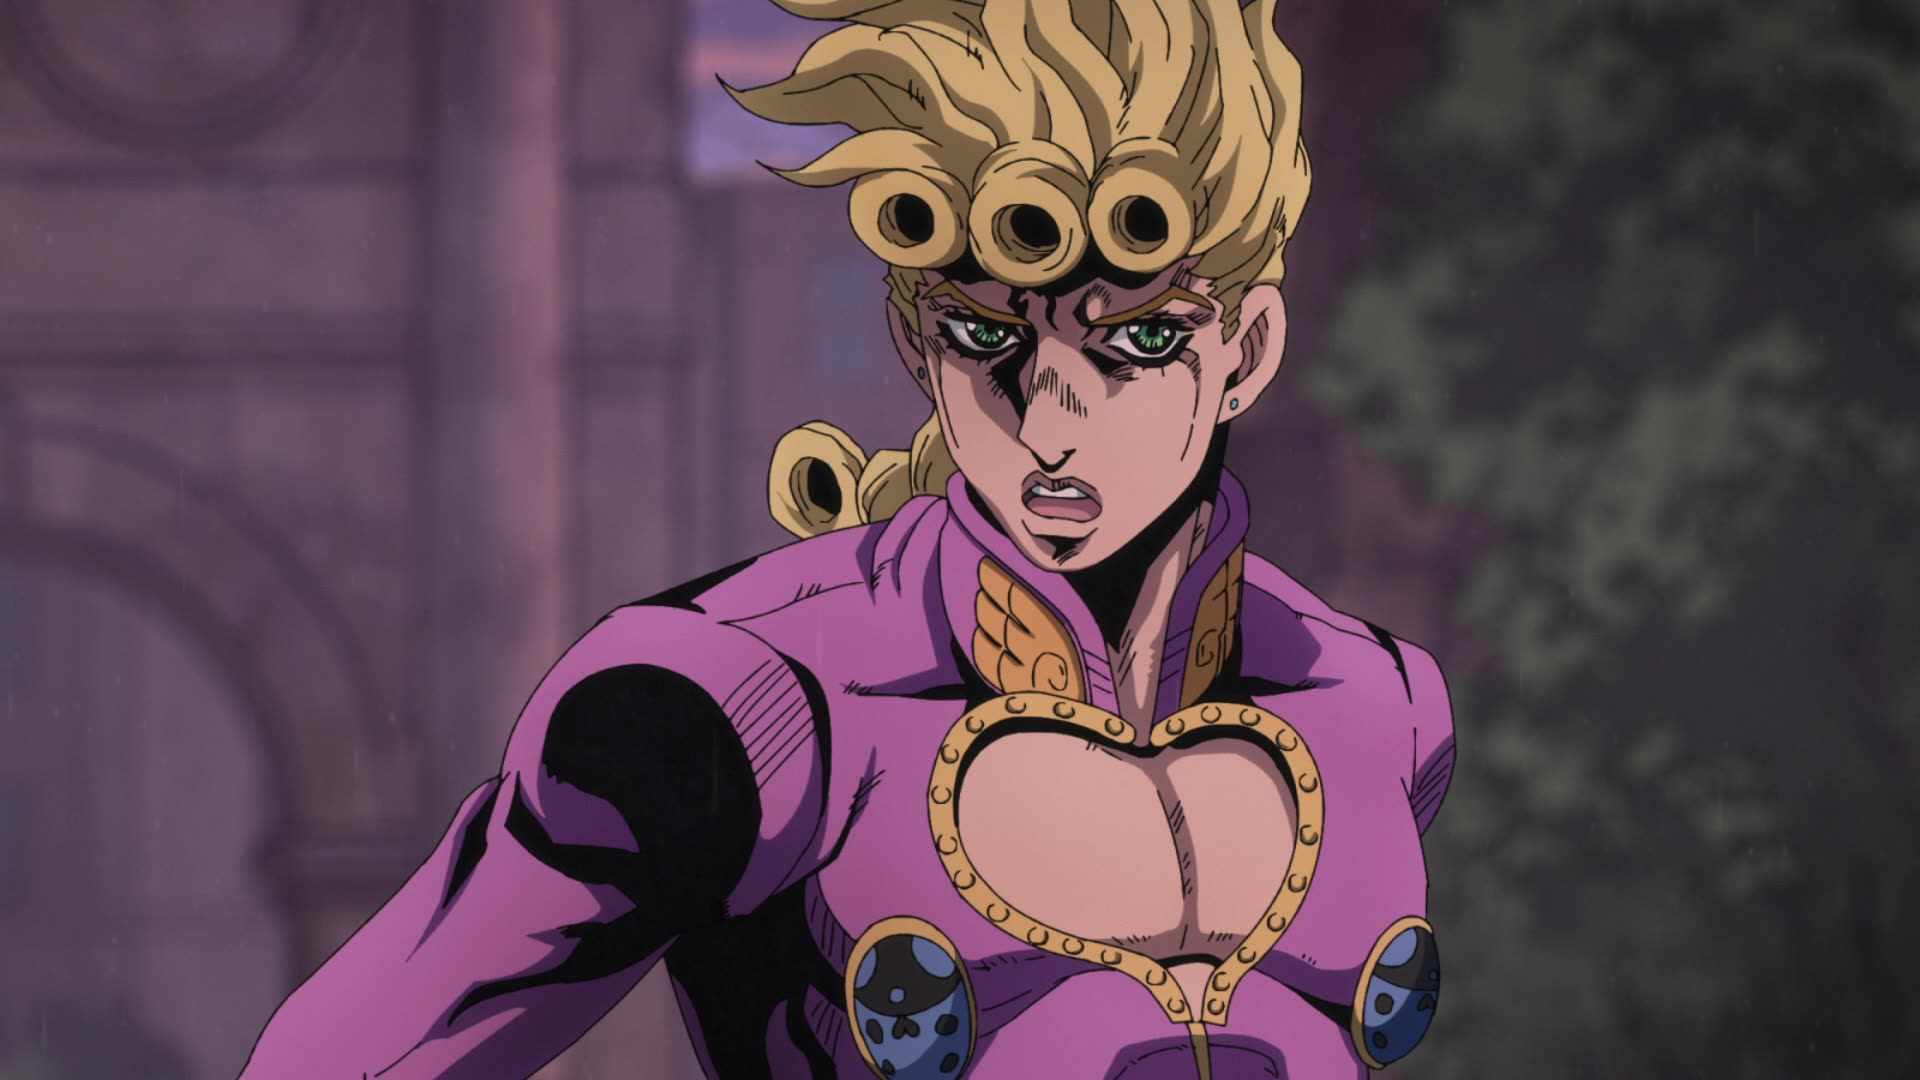 JoJo's Bizarre Adventure: Golden Wind Episode 36, Diavolo Surfaces